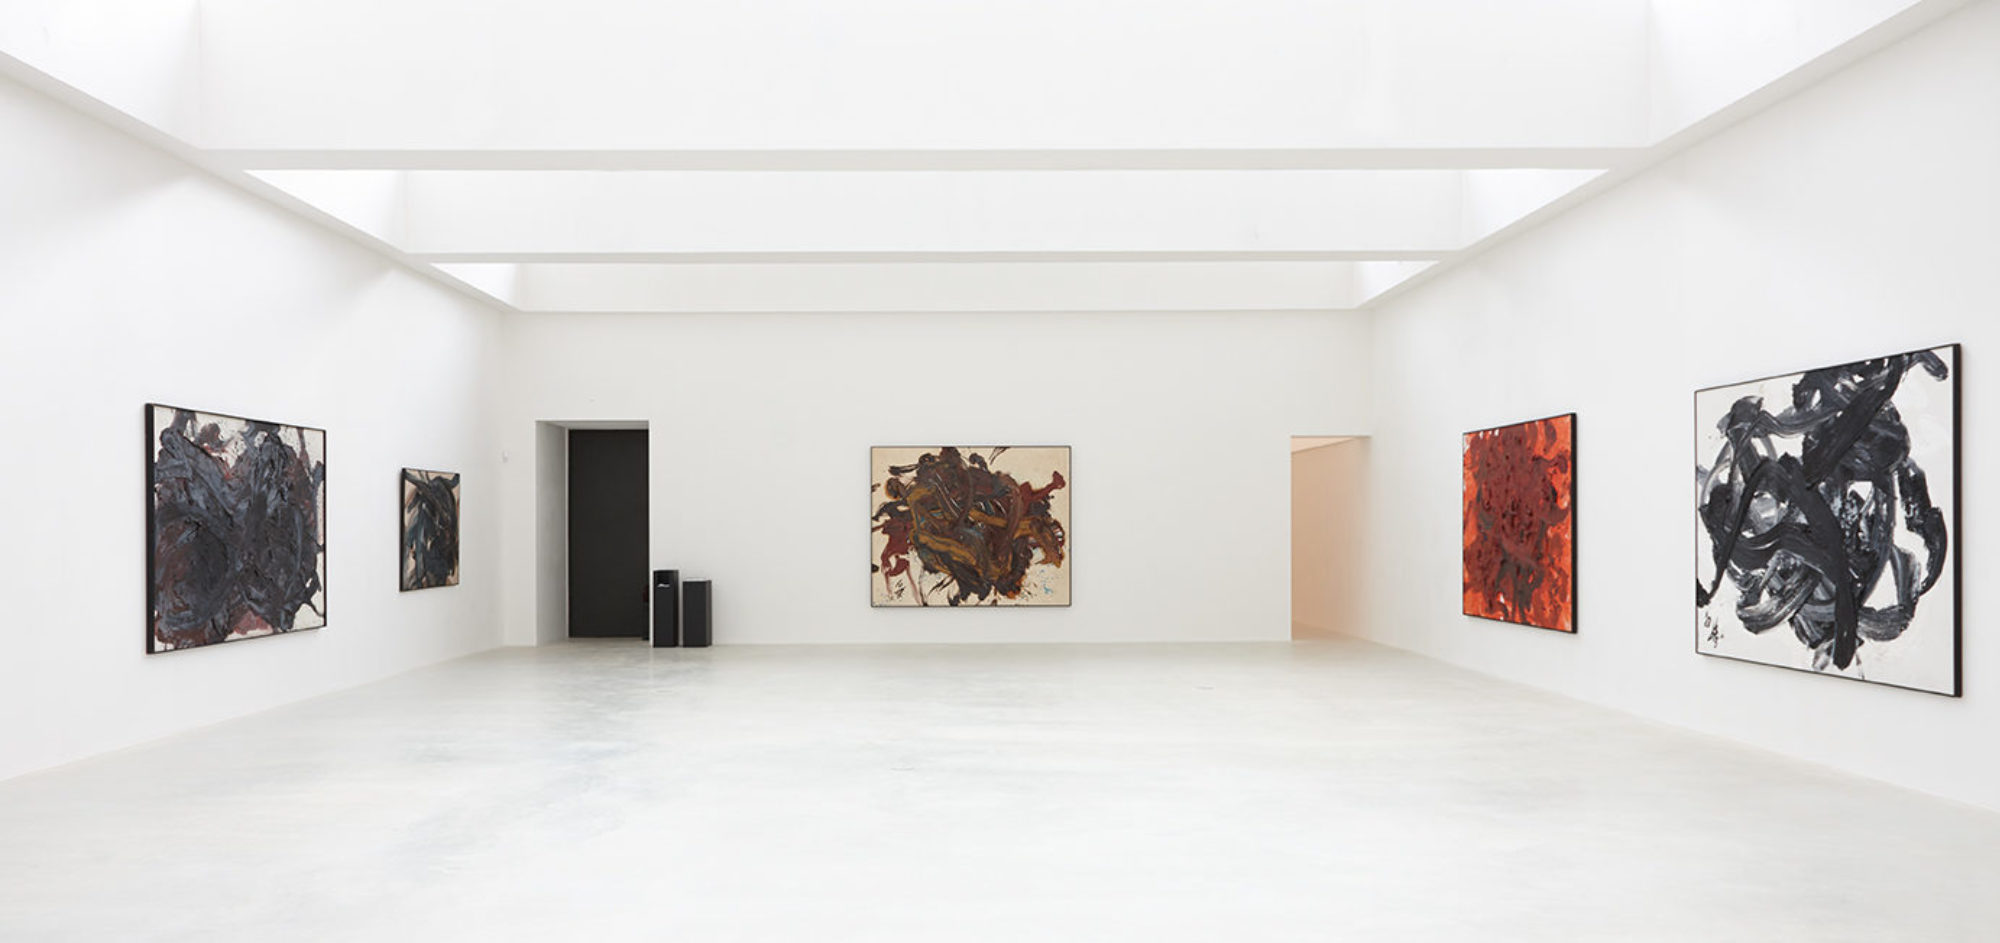 Installation view of Kazuo Shiraga, Axel Vervoordt Gallery's inaugural exhibition at Kanaal